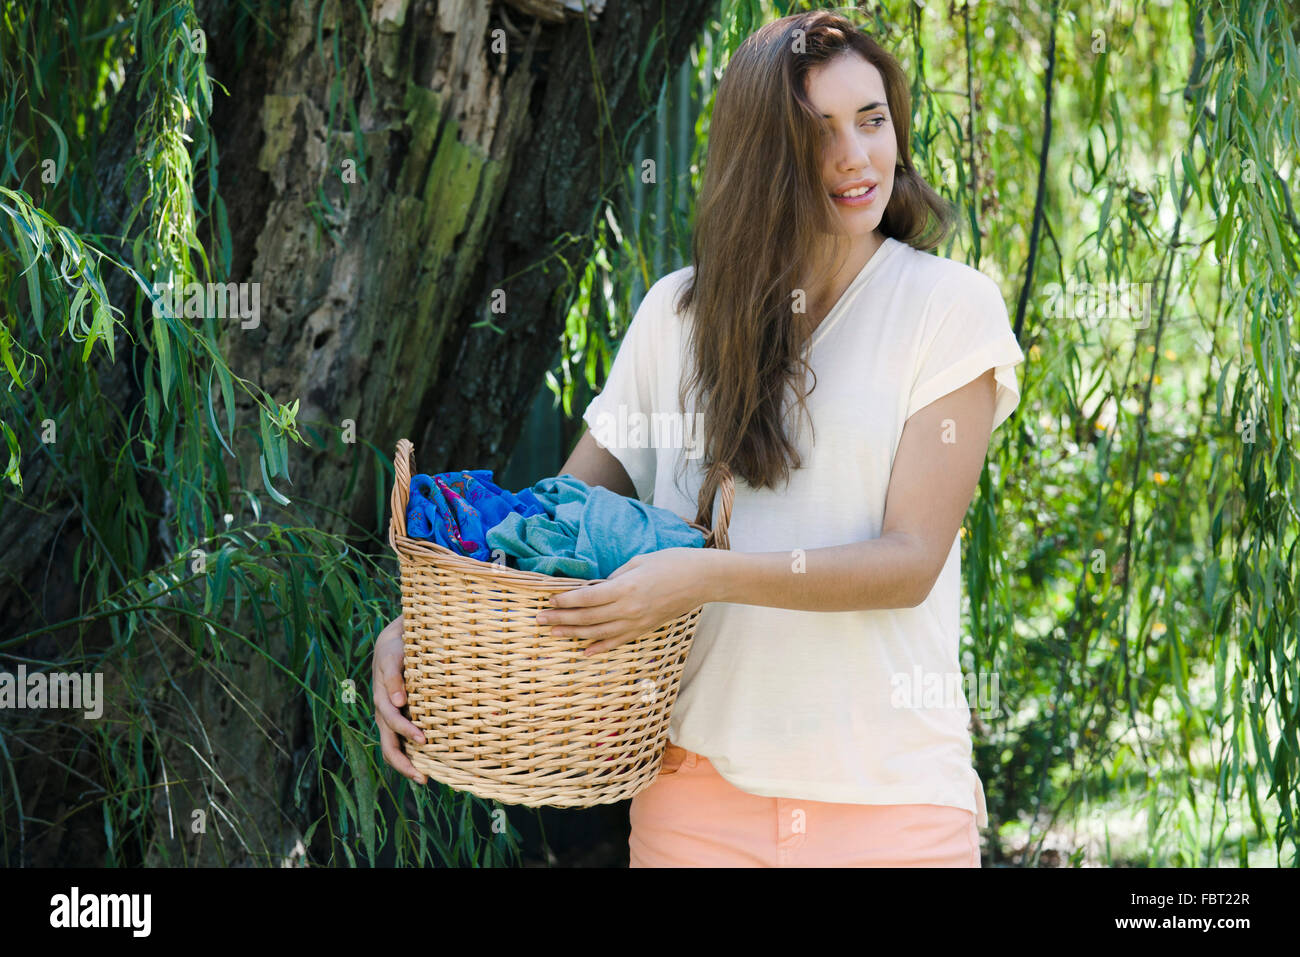 Woman carrying laundry basket - Stock Image